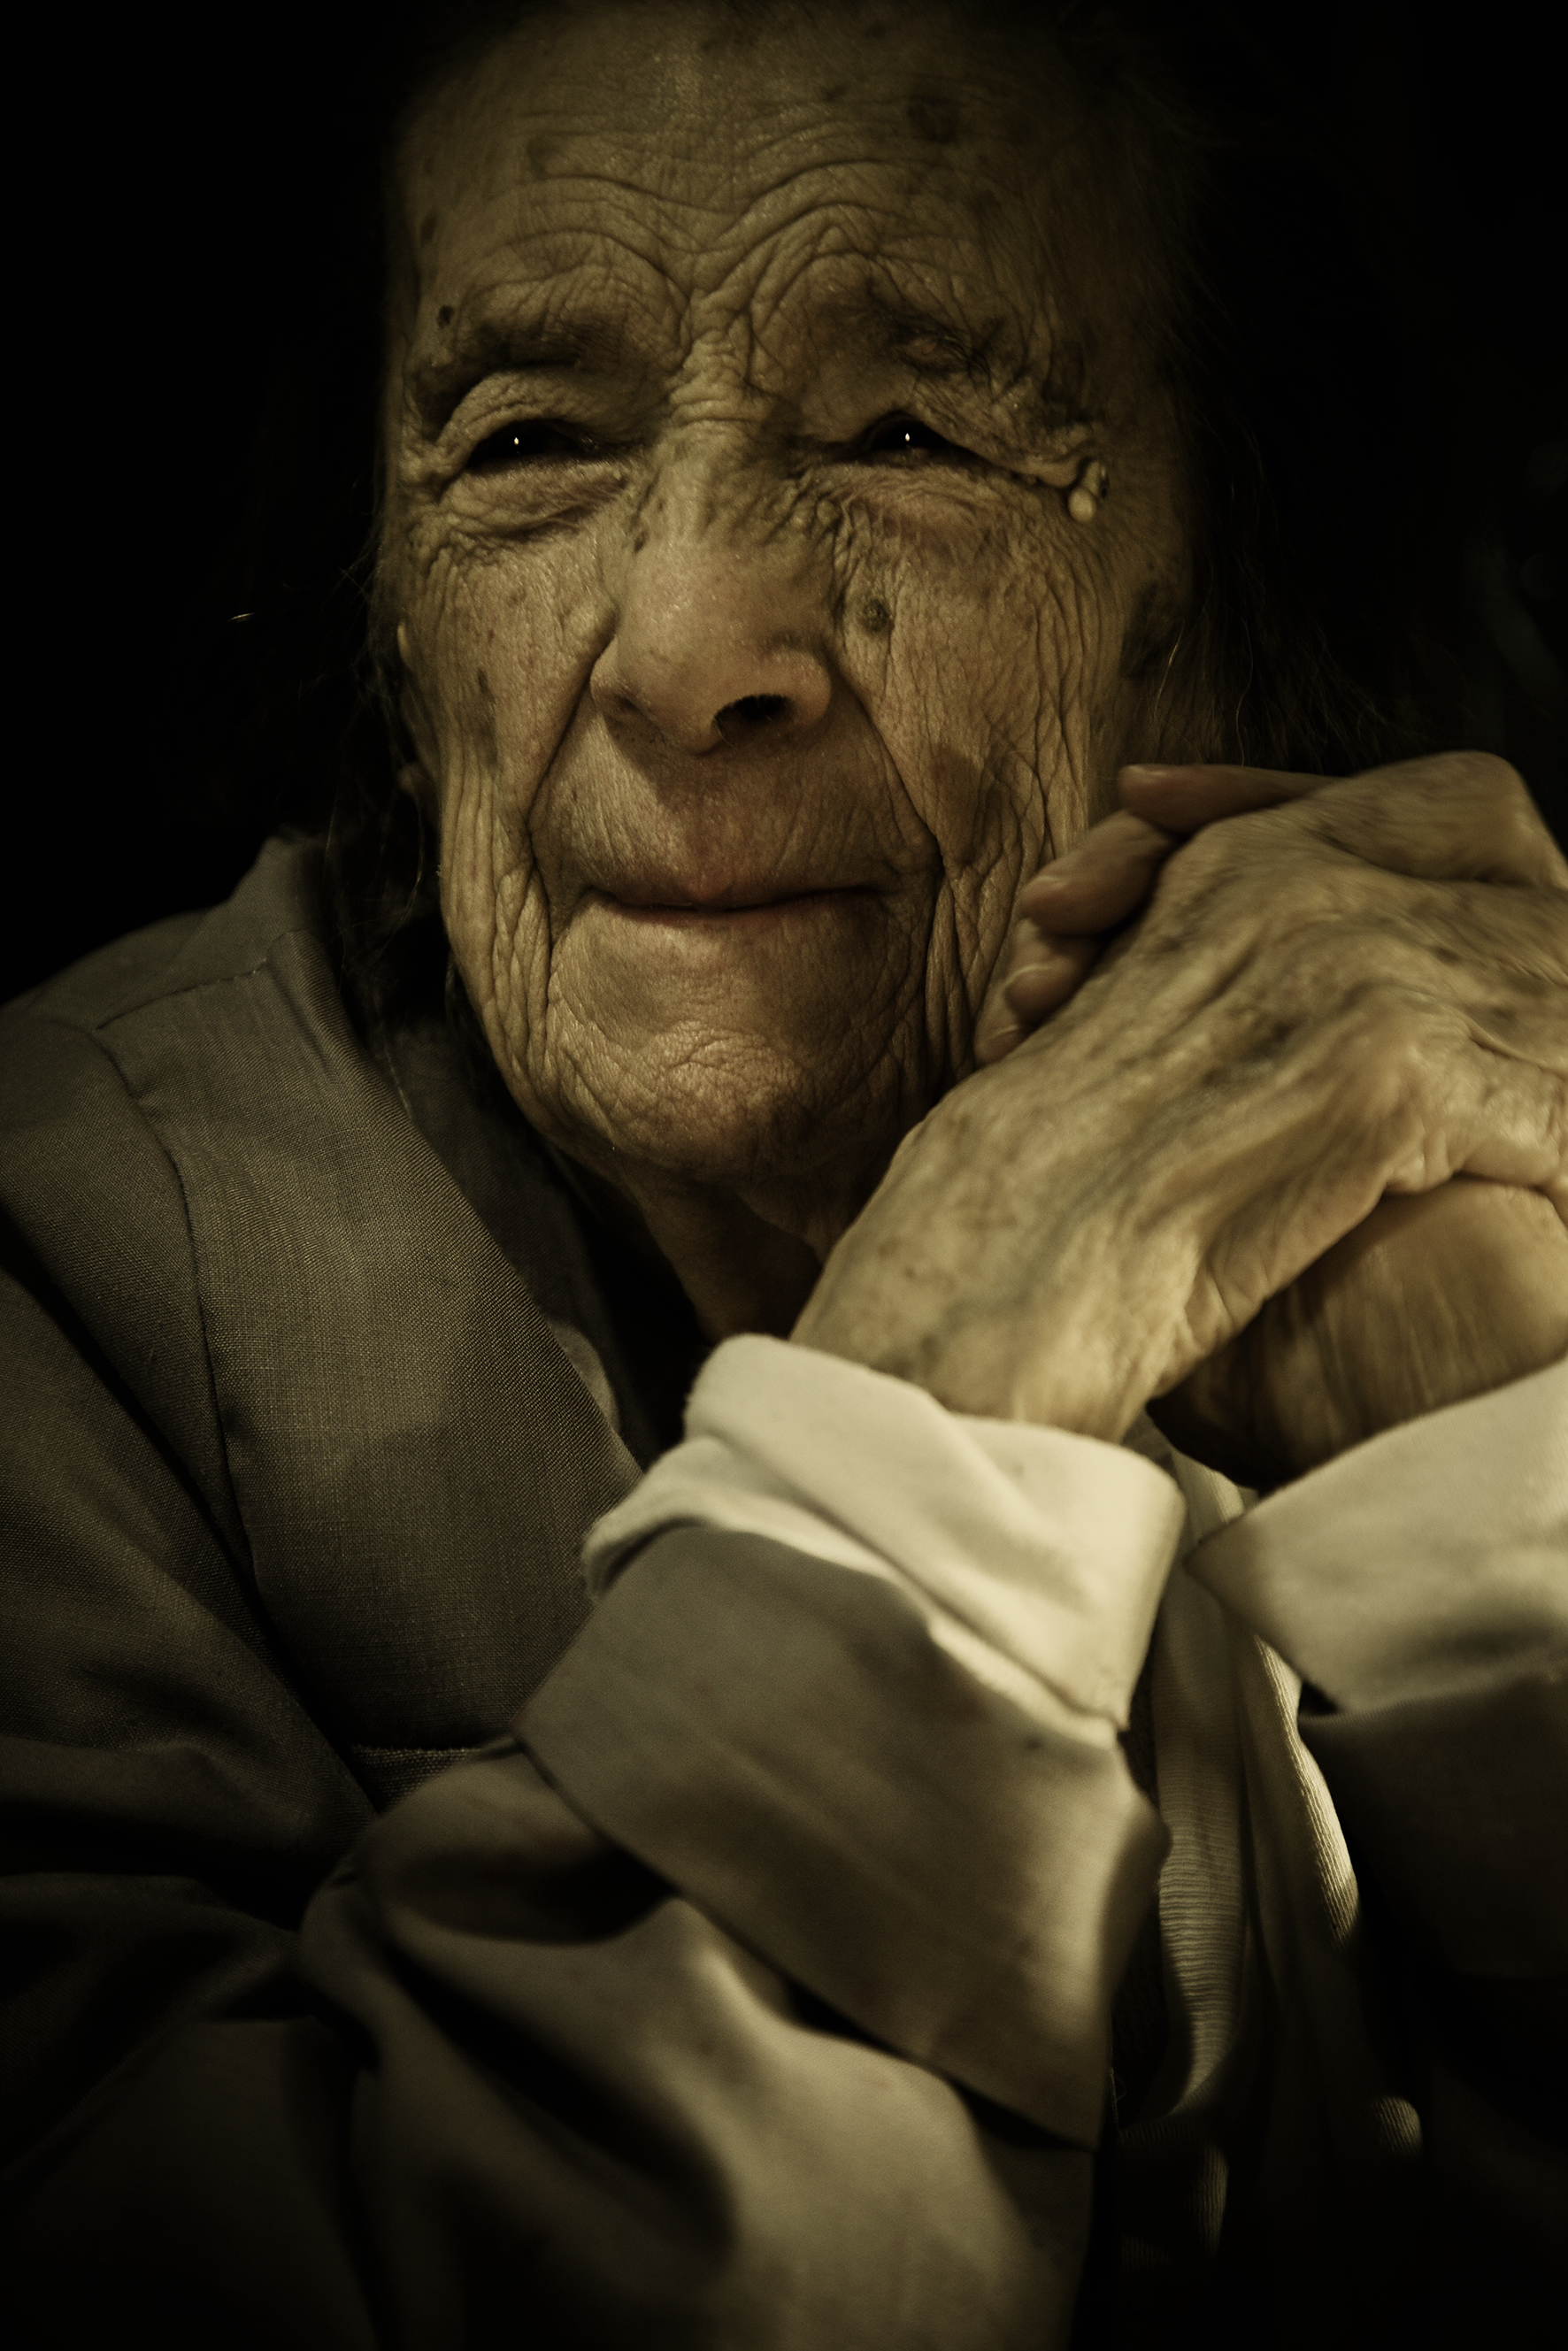 Photograph of Louise Bourgeois by Scott Douglas, Issue 2, 2010